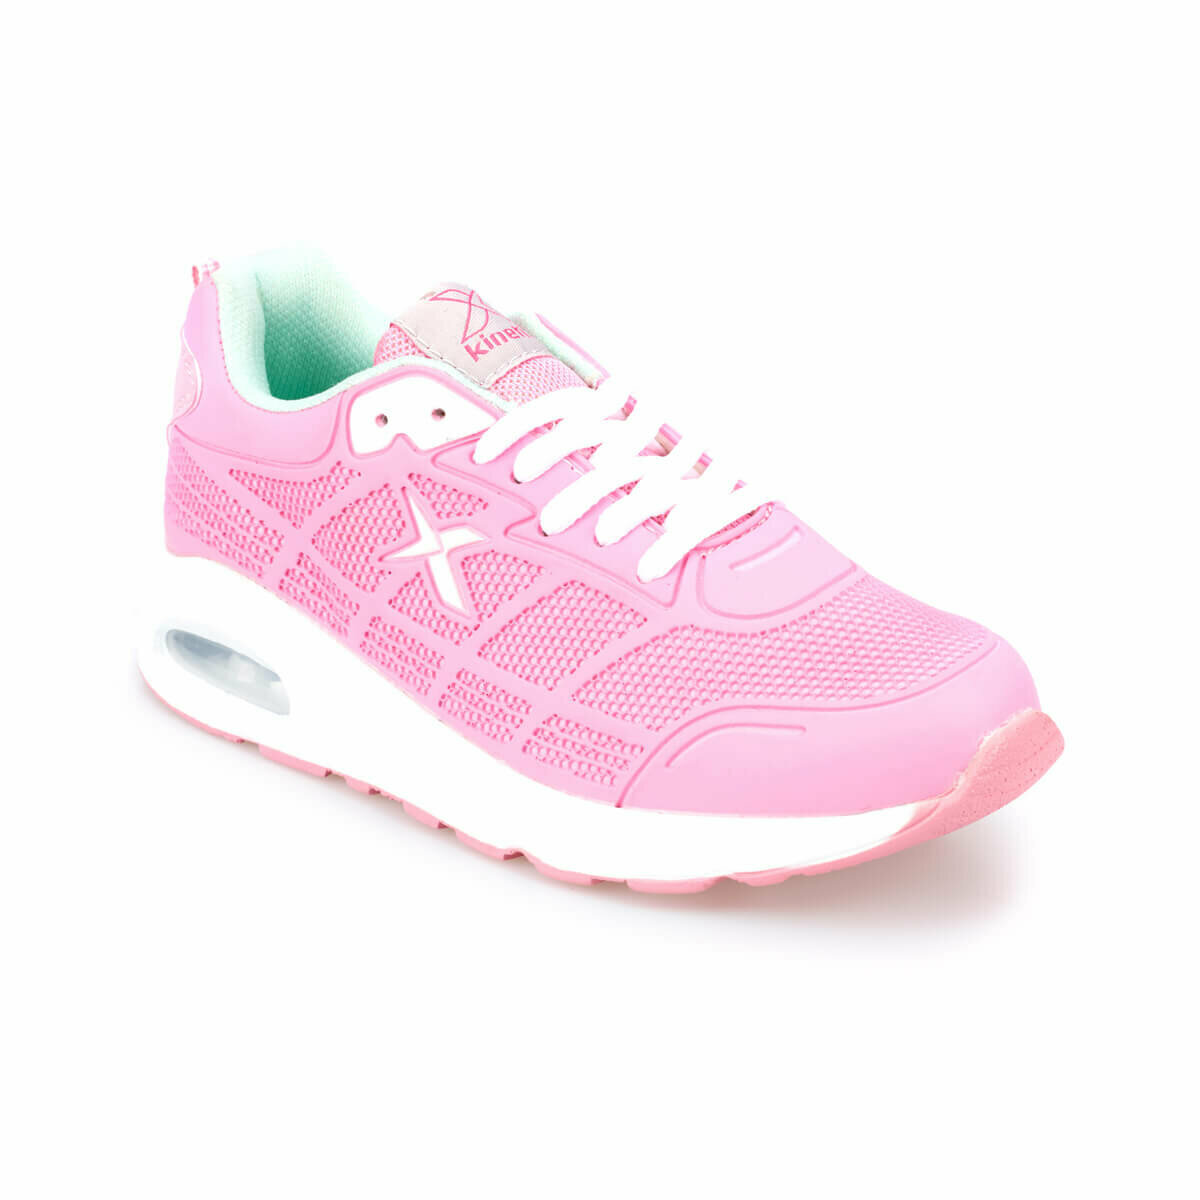 FLO RORY Pink Female Child Sneaker Shoes KINETIX